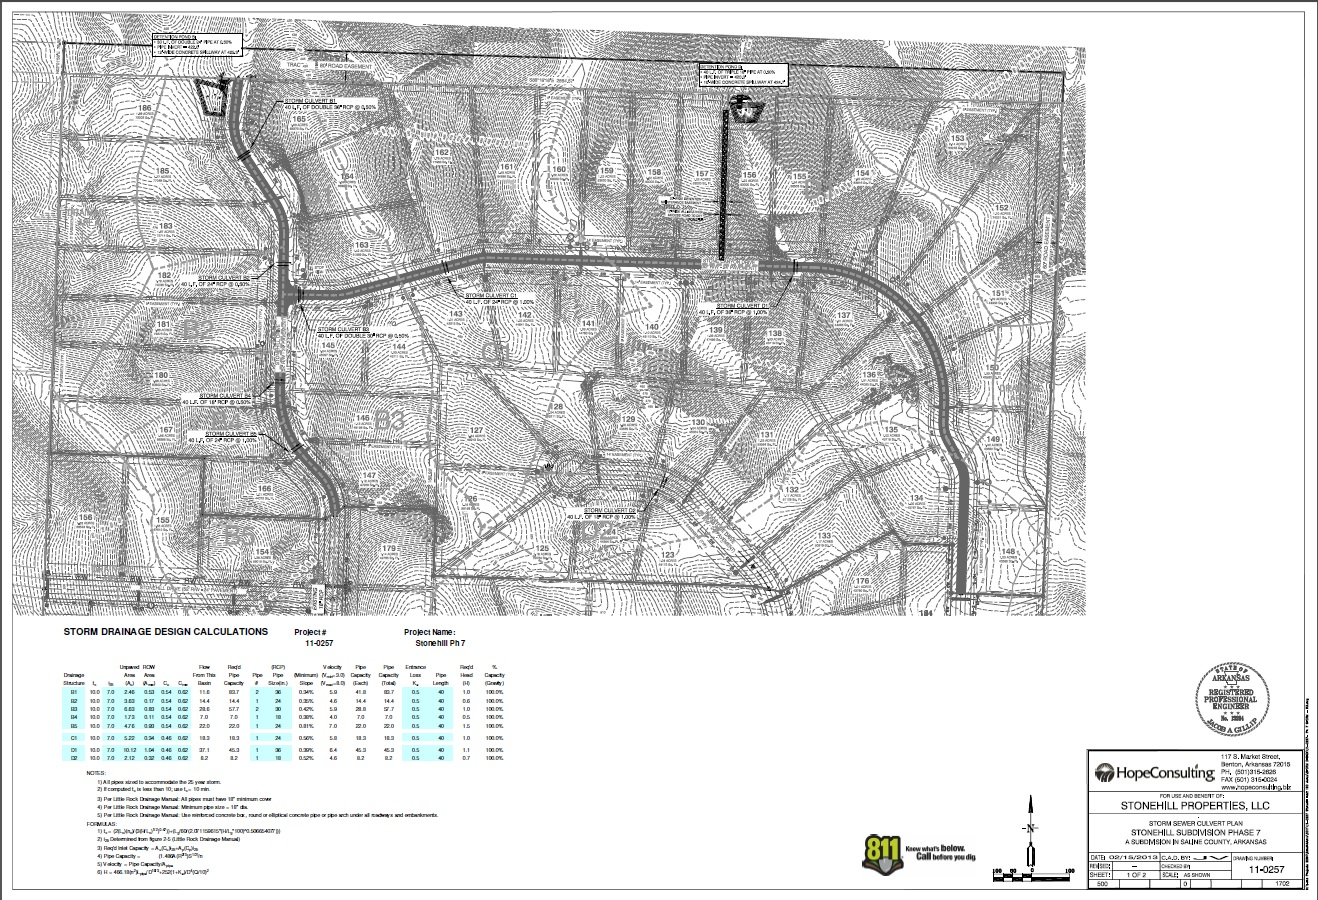 Stormwater Drainage Design| Hope Consulting: Civil Engineers